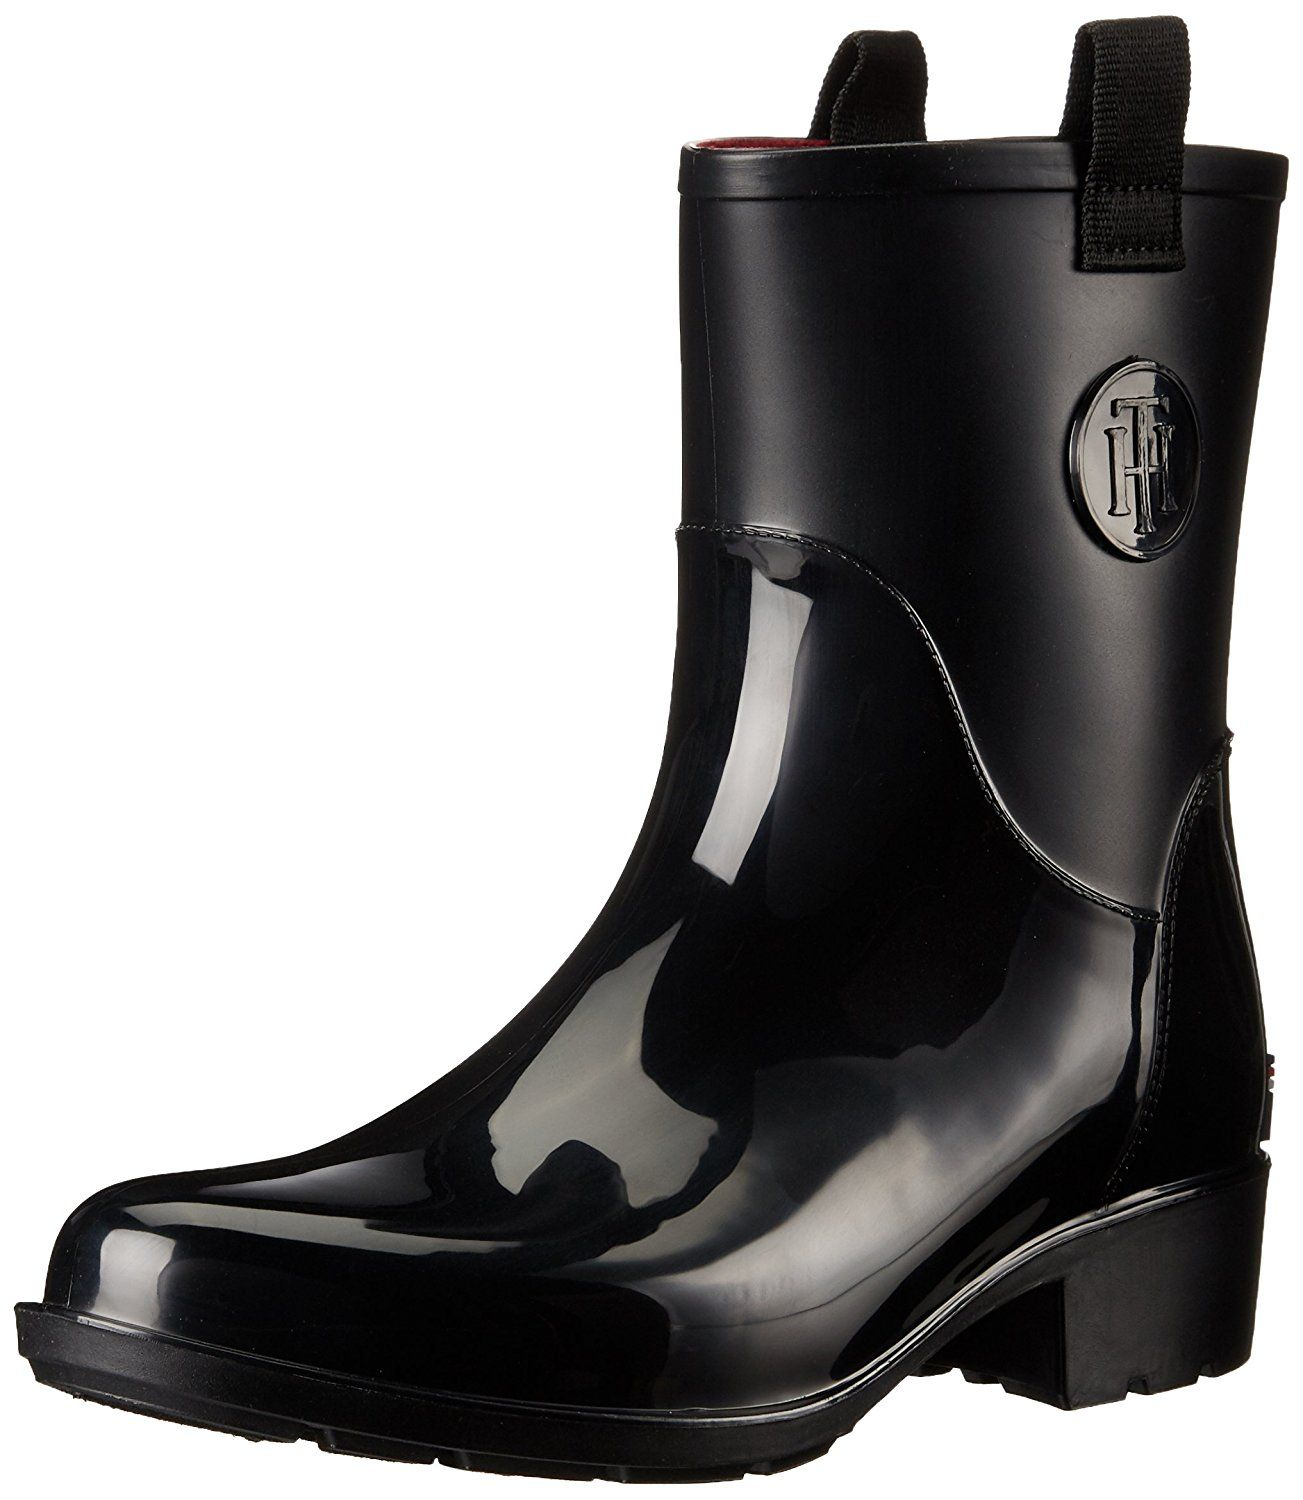 d653571c8 Tommy Hilfiger Women s Khristie Rain Boot    Insider s special review you  can t miss. Read more   Rain boots